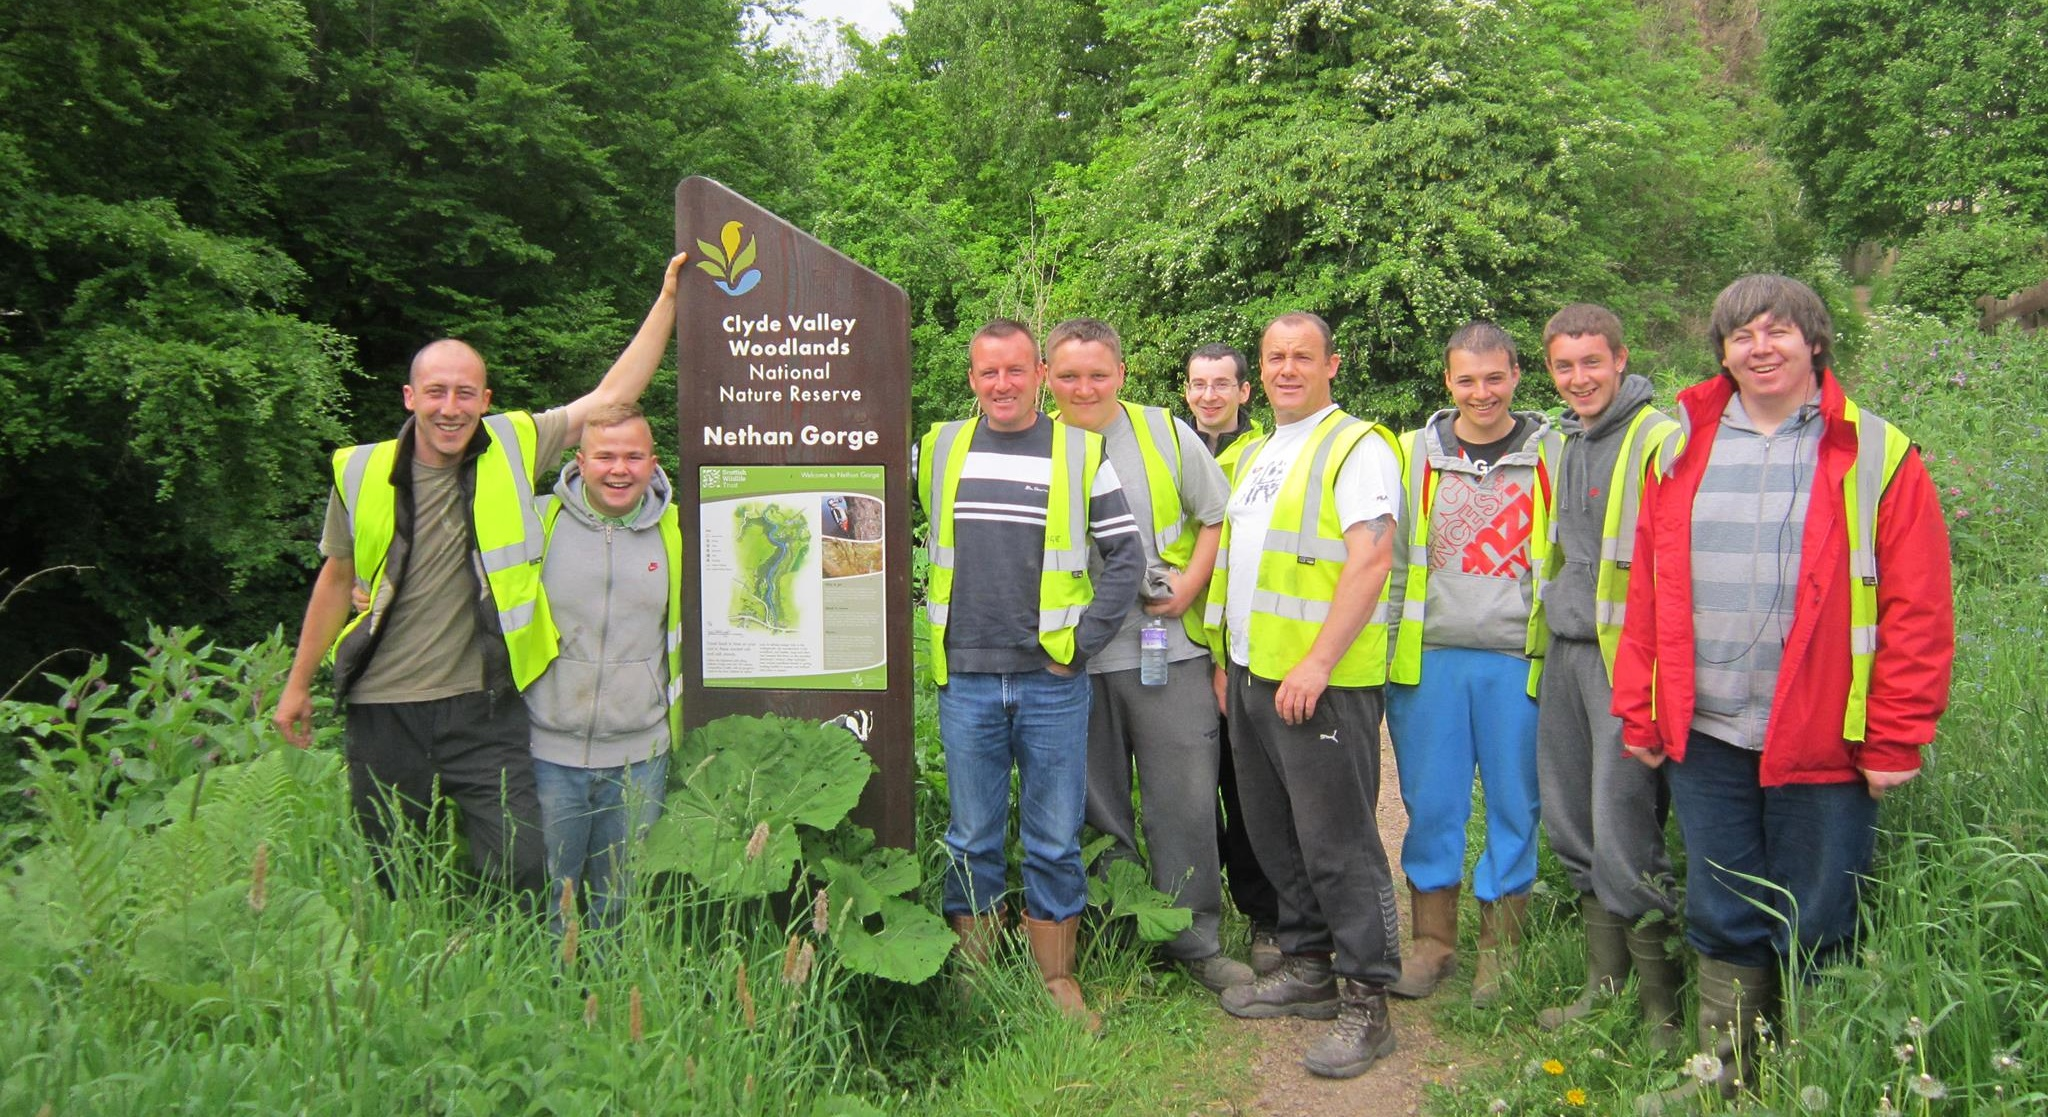 Clydesdale Community Initiatives (CCI) volunteers at Scottish Wildlife Trust Nethan Gorge, part of the Clyde Valley National Nature Reserve (NNR)